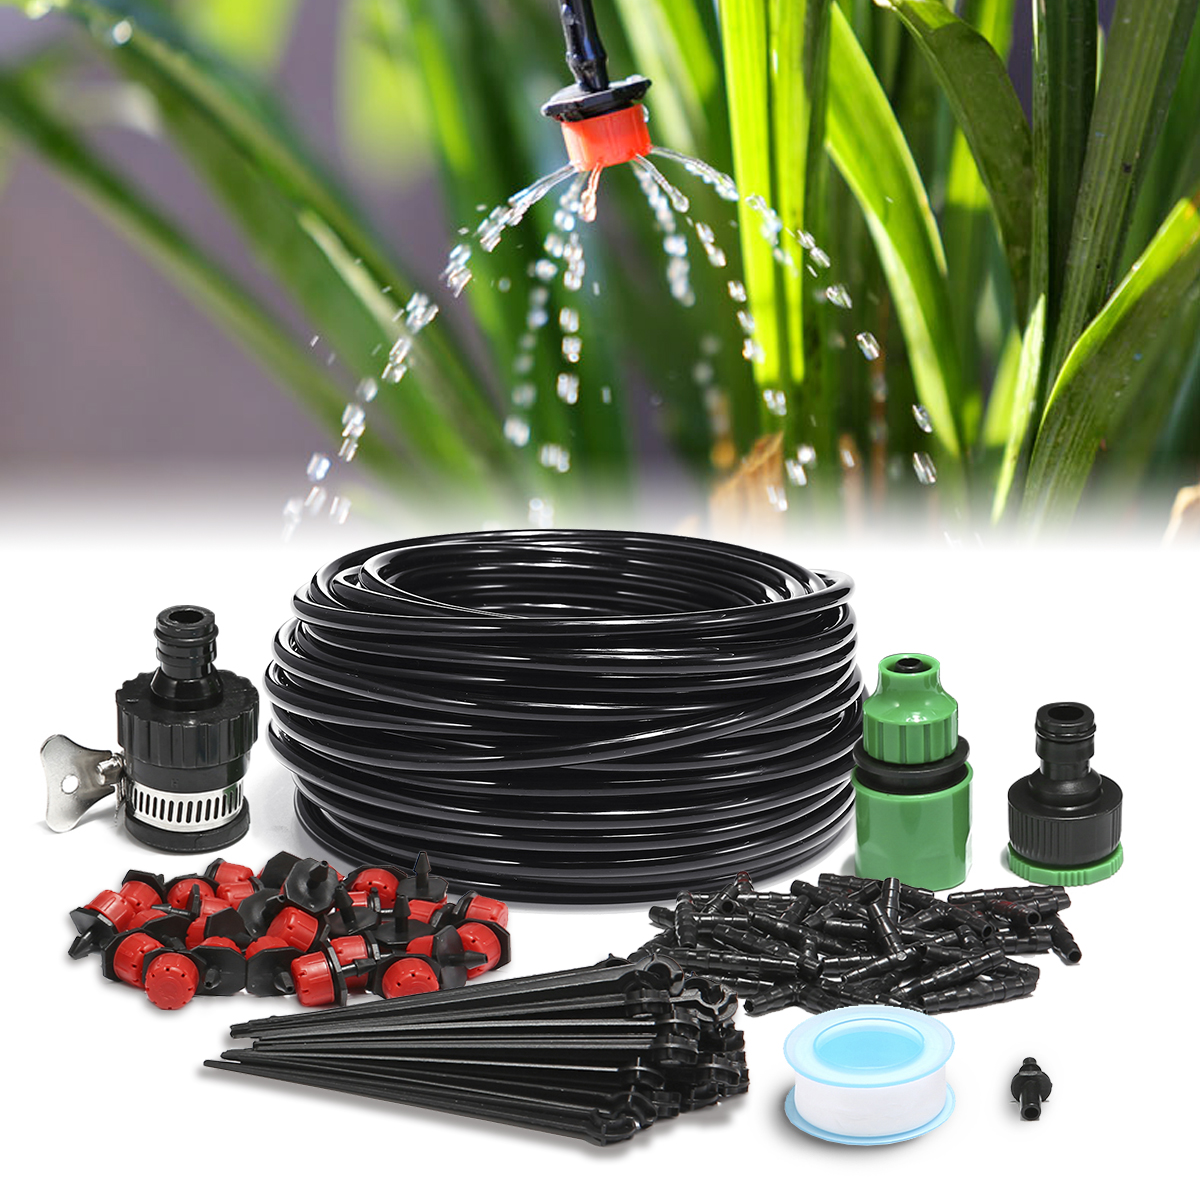 25m Micro Irrigation kit Drip Watering System Automatic Garden Water Kit